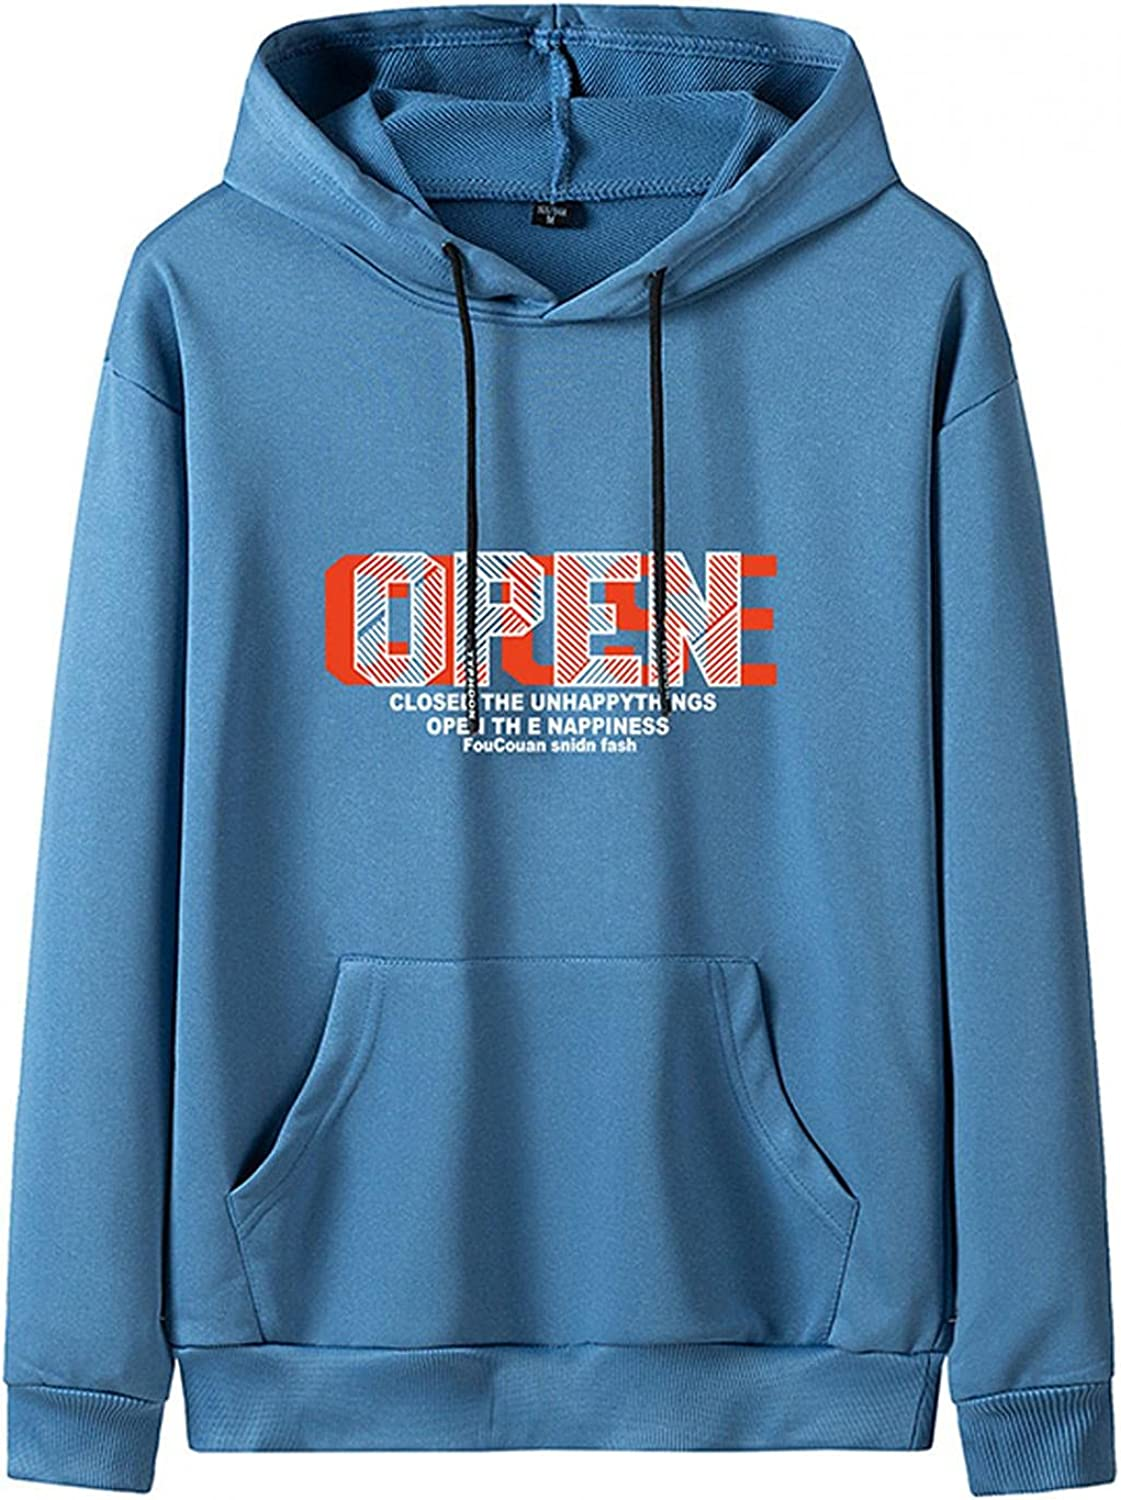 Men's Pullover Hooded Sweatshirts Letter Print Casual Loose Fashion Athletic Novelty Crewneck Hoodies Sports Clothing